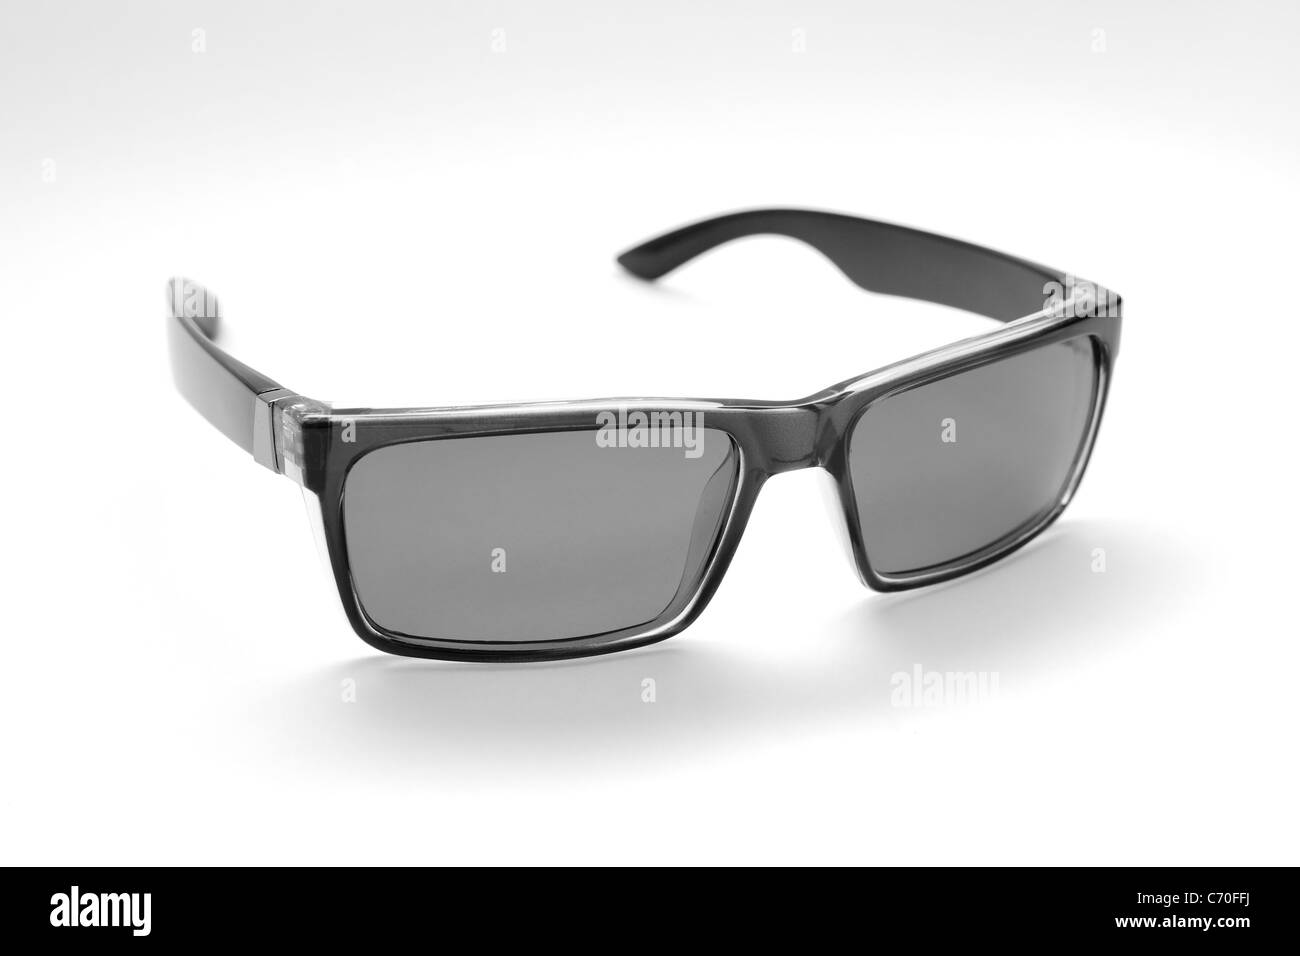 Retro-styled sunglasses isolated on white background. B&W - Stock Image